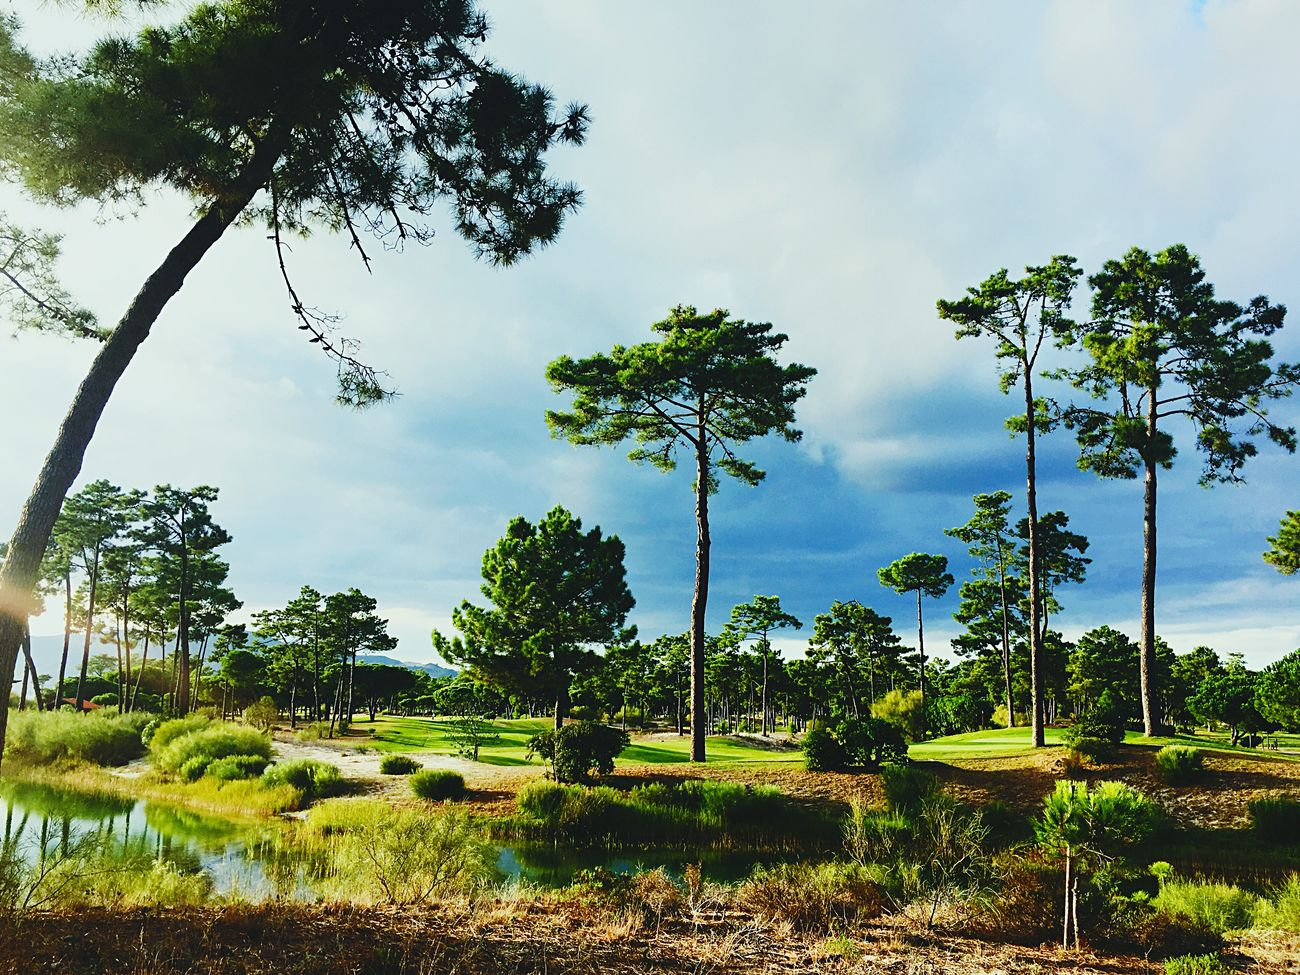 Portugal Troia Portugal Troia Golfclub Forest Green Green Green!  Nature Nature Beauty Trees And Sky Tranquility Having A Good Time Having A Drink Green Color Tranquil Scene Cloud - Sky Great View Amazing View Awsome Day ♥ Taking Photos